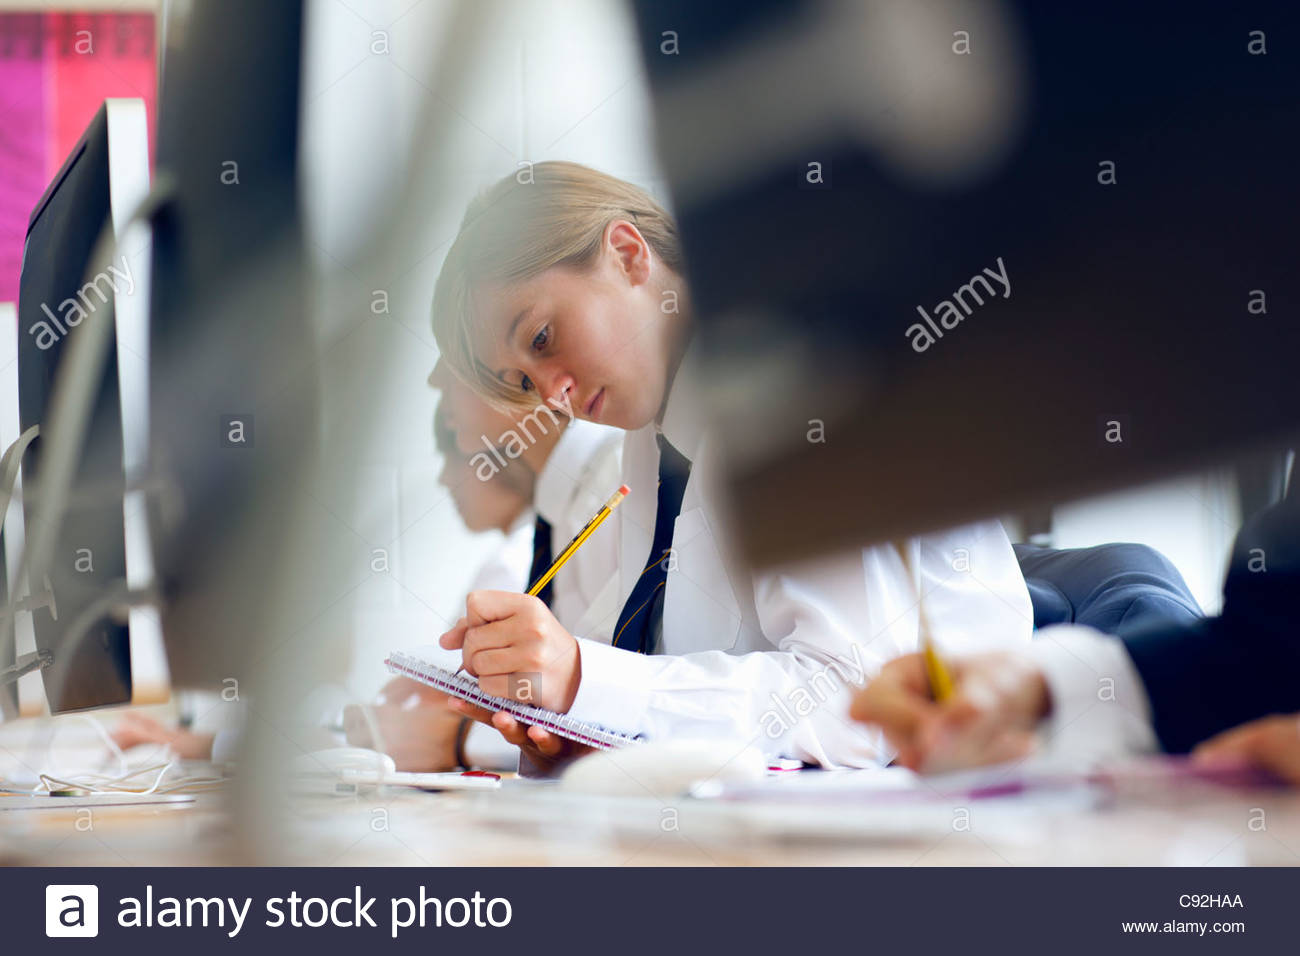 Female student in school uniform writing in notebook at computer - Stock Image